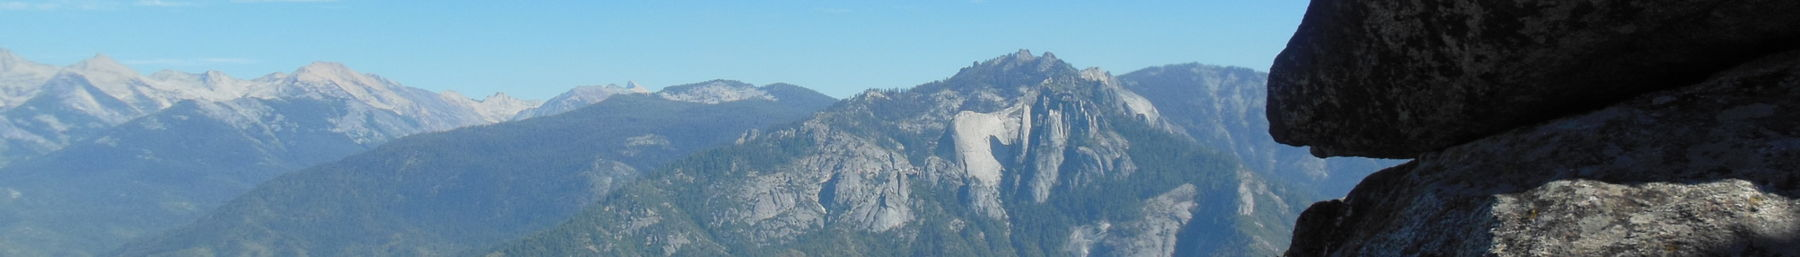 Sequoia Banner Moro Rock View.jpg